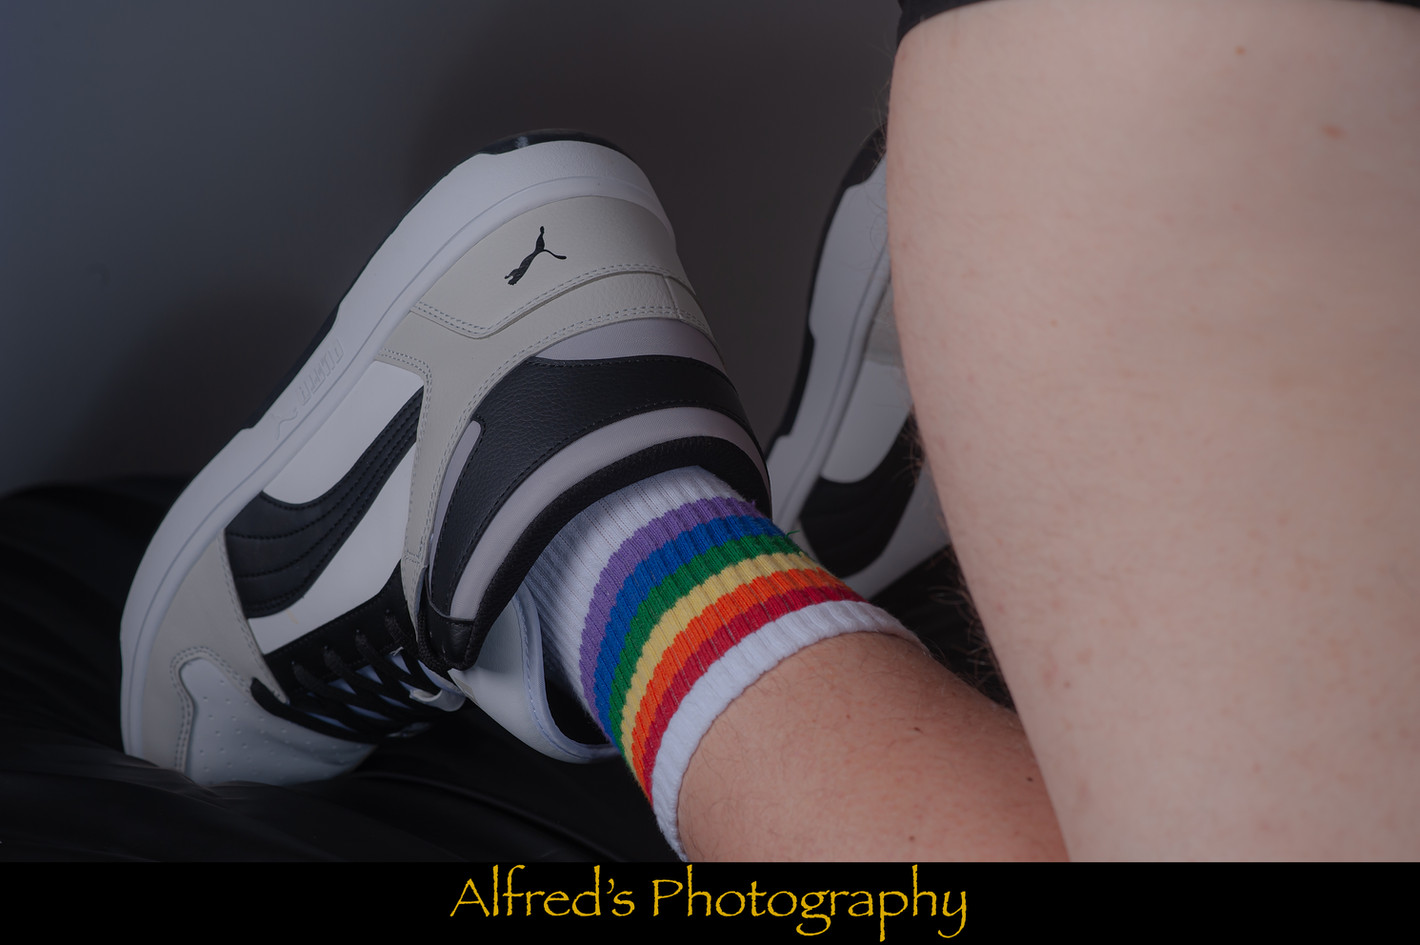 Alfred's Photography